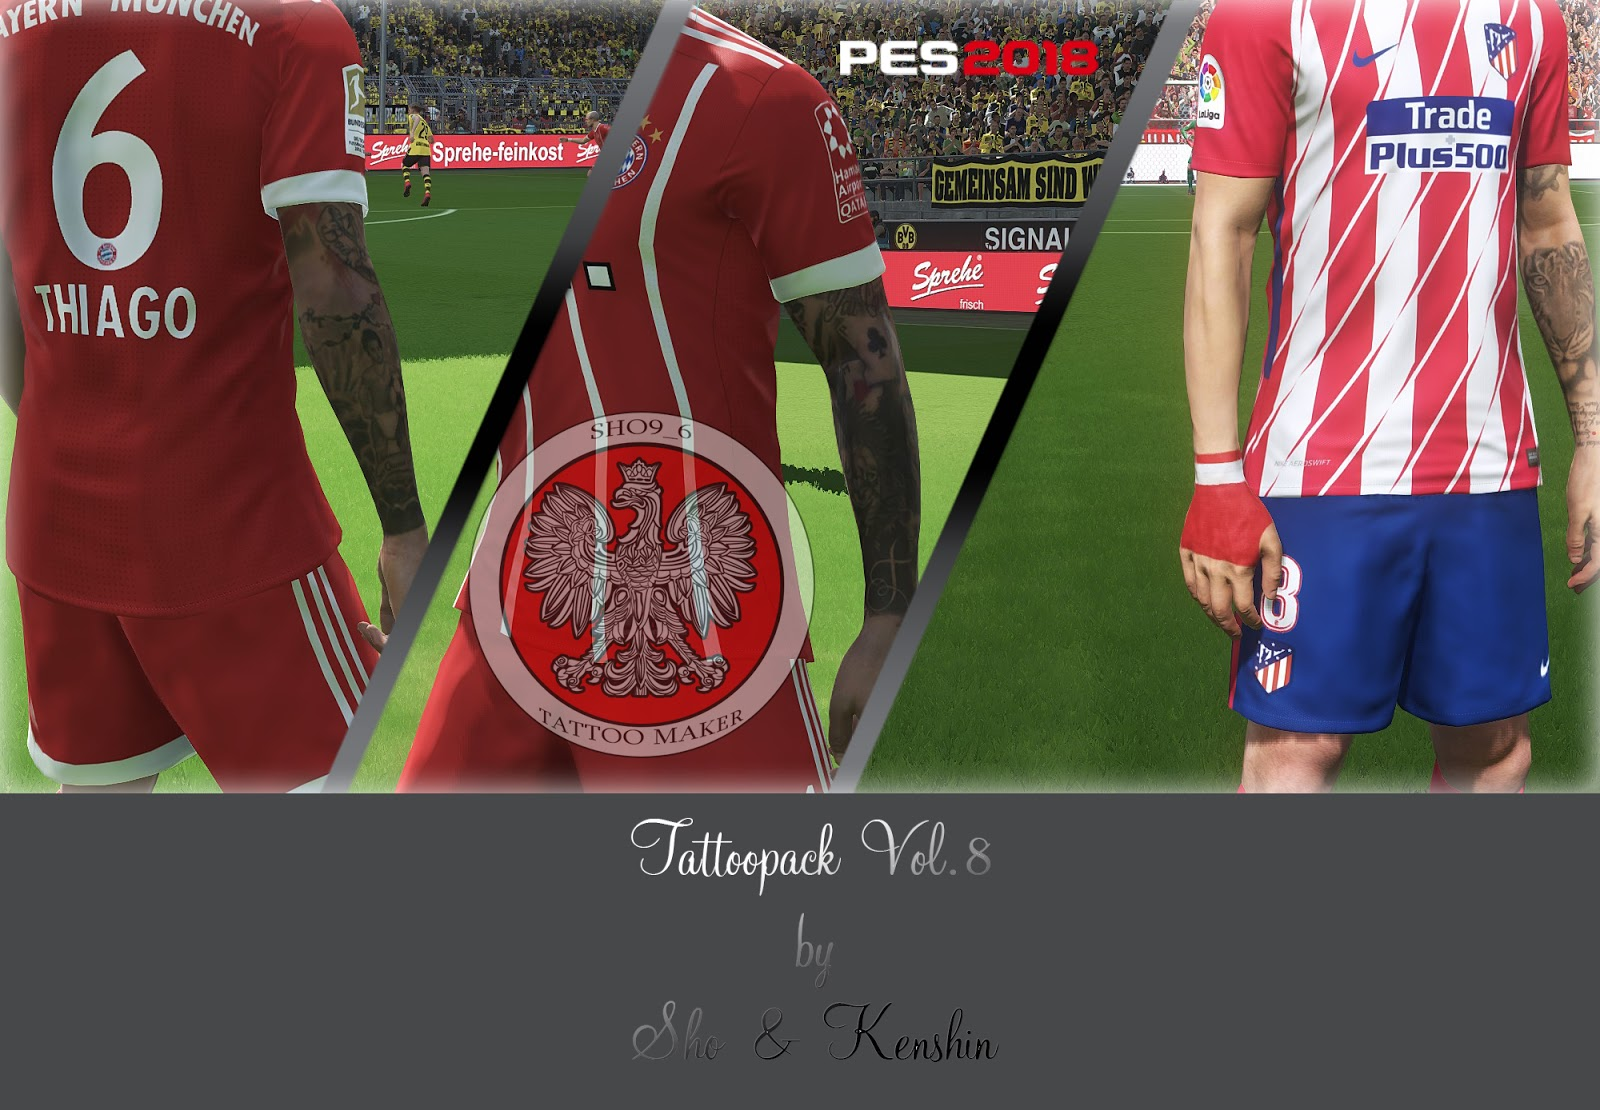 PES 2018 Tattoopack Vol. 8 by Sho9_6